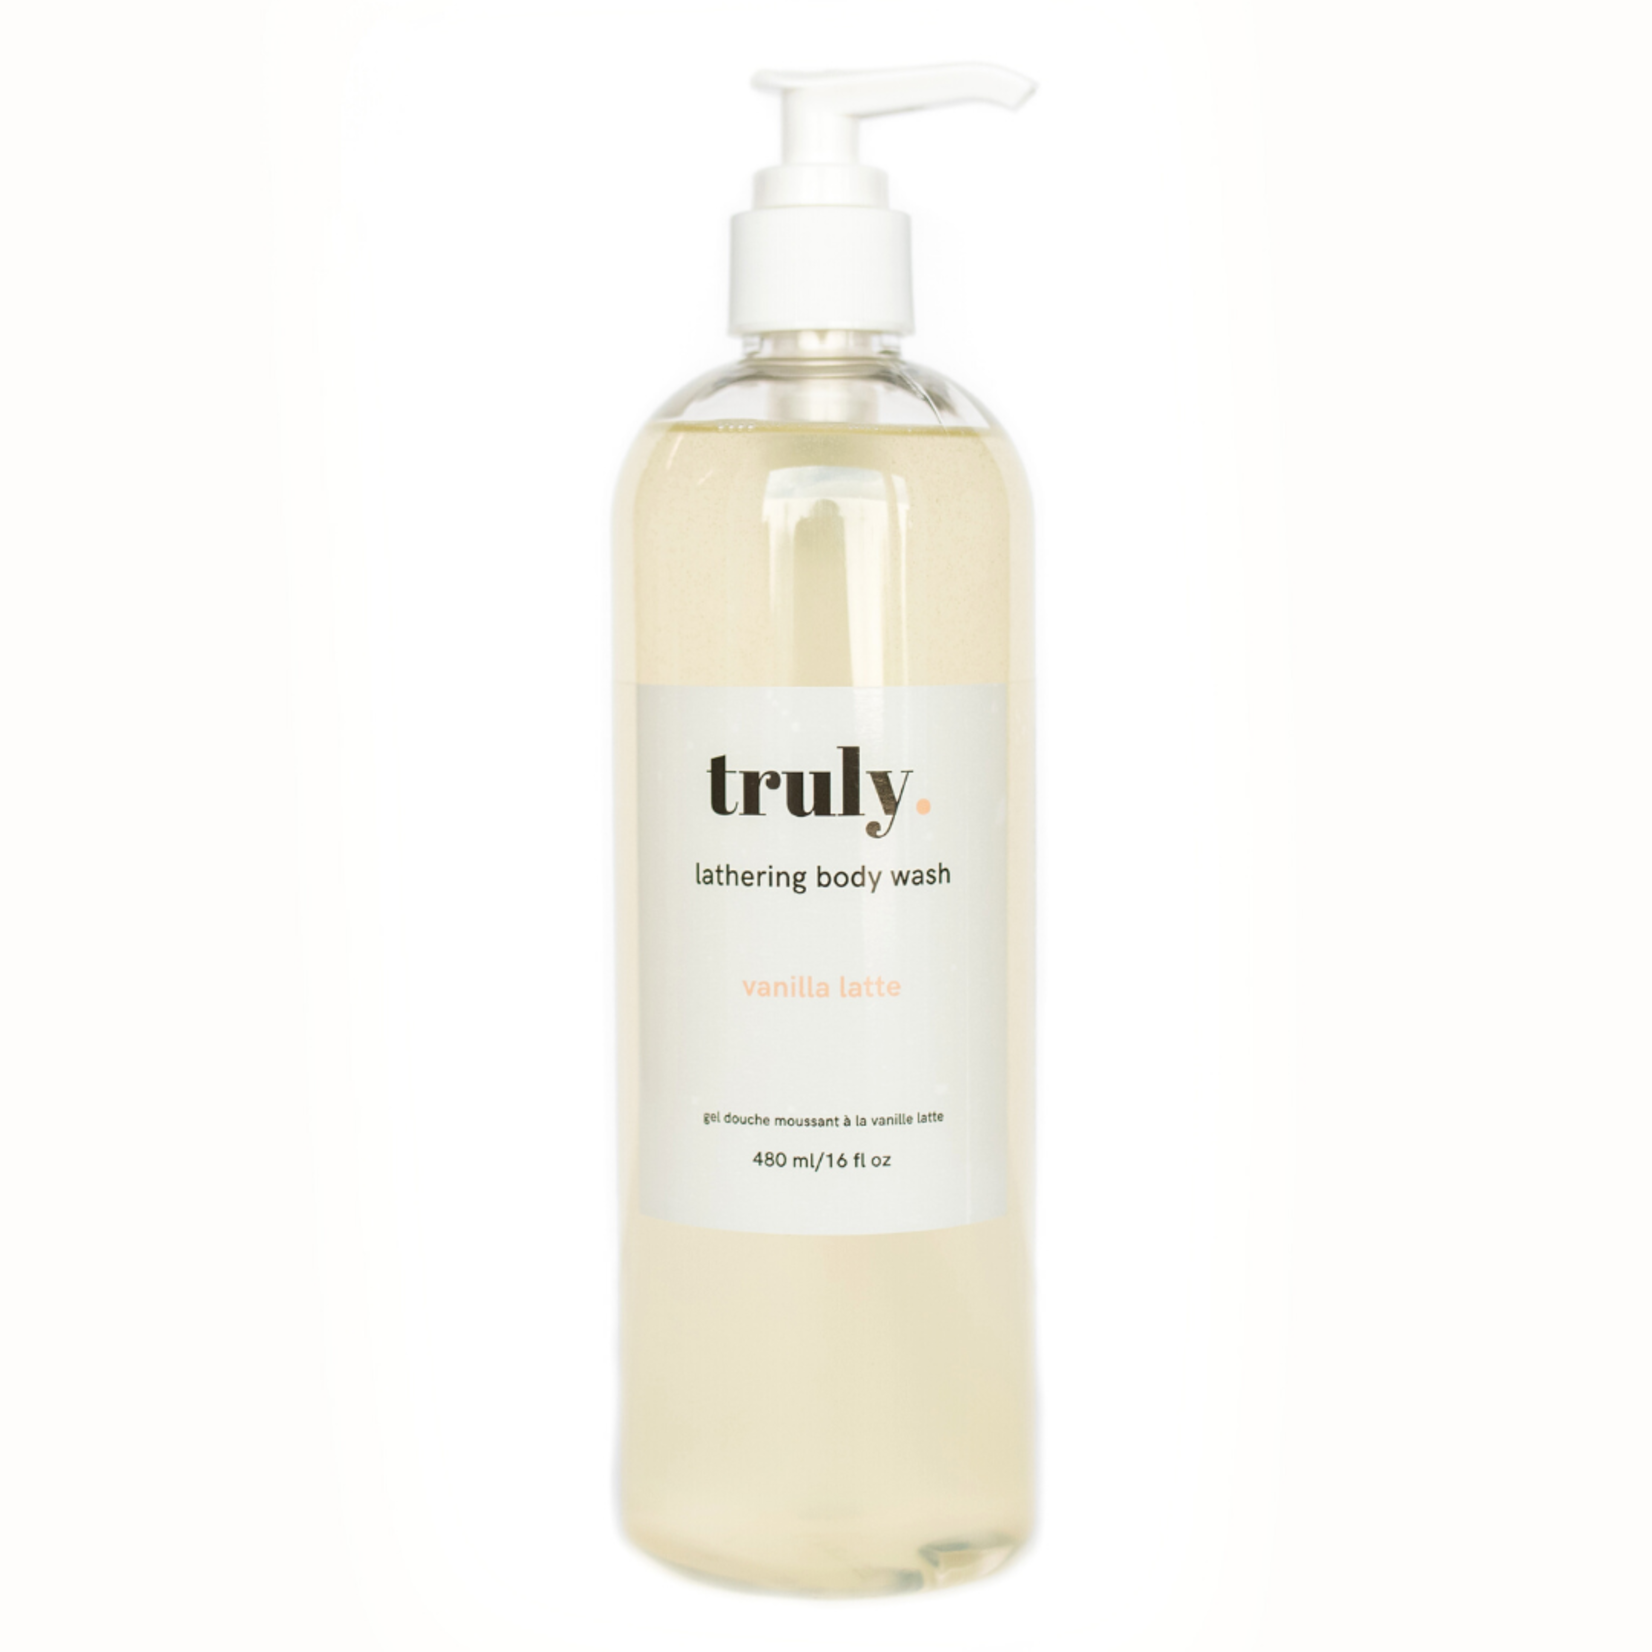 Truly lifestylebrand Truly nettoyant pour le corps vanille latte